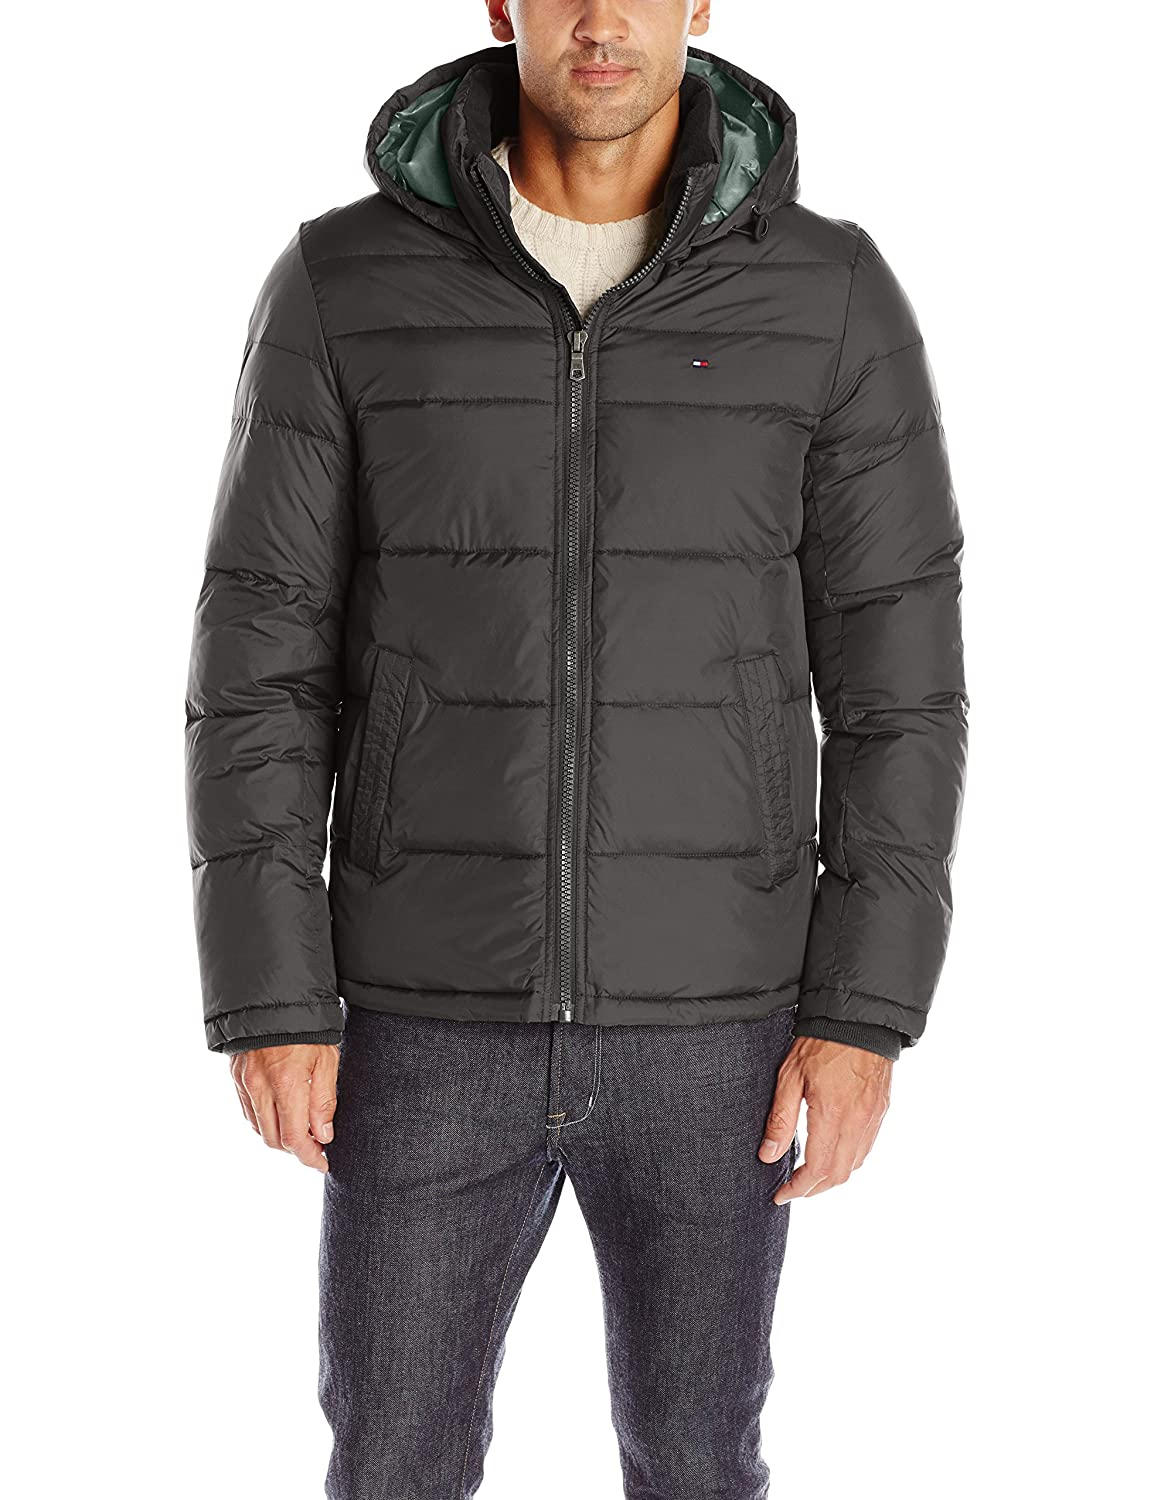 Tommy Hilfiger Mens Classic Hooded Puffer Jacket (Regular and Big & Tall Sizes)